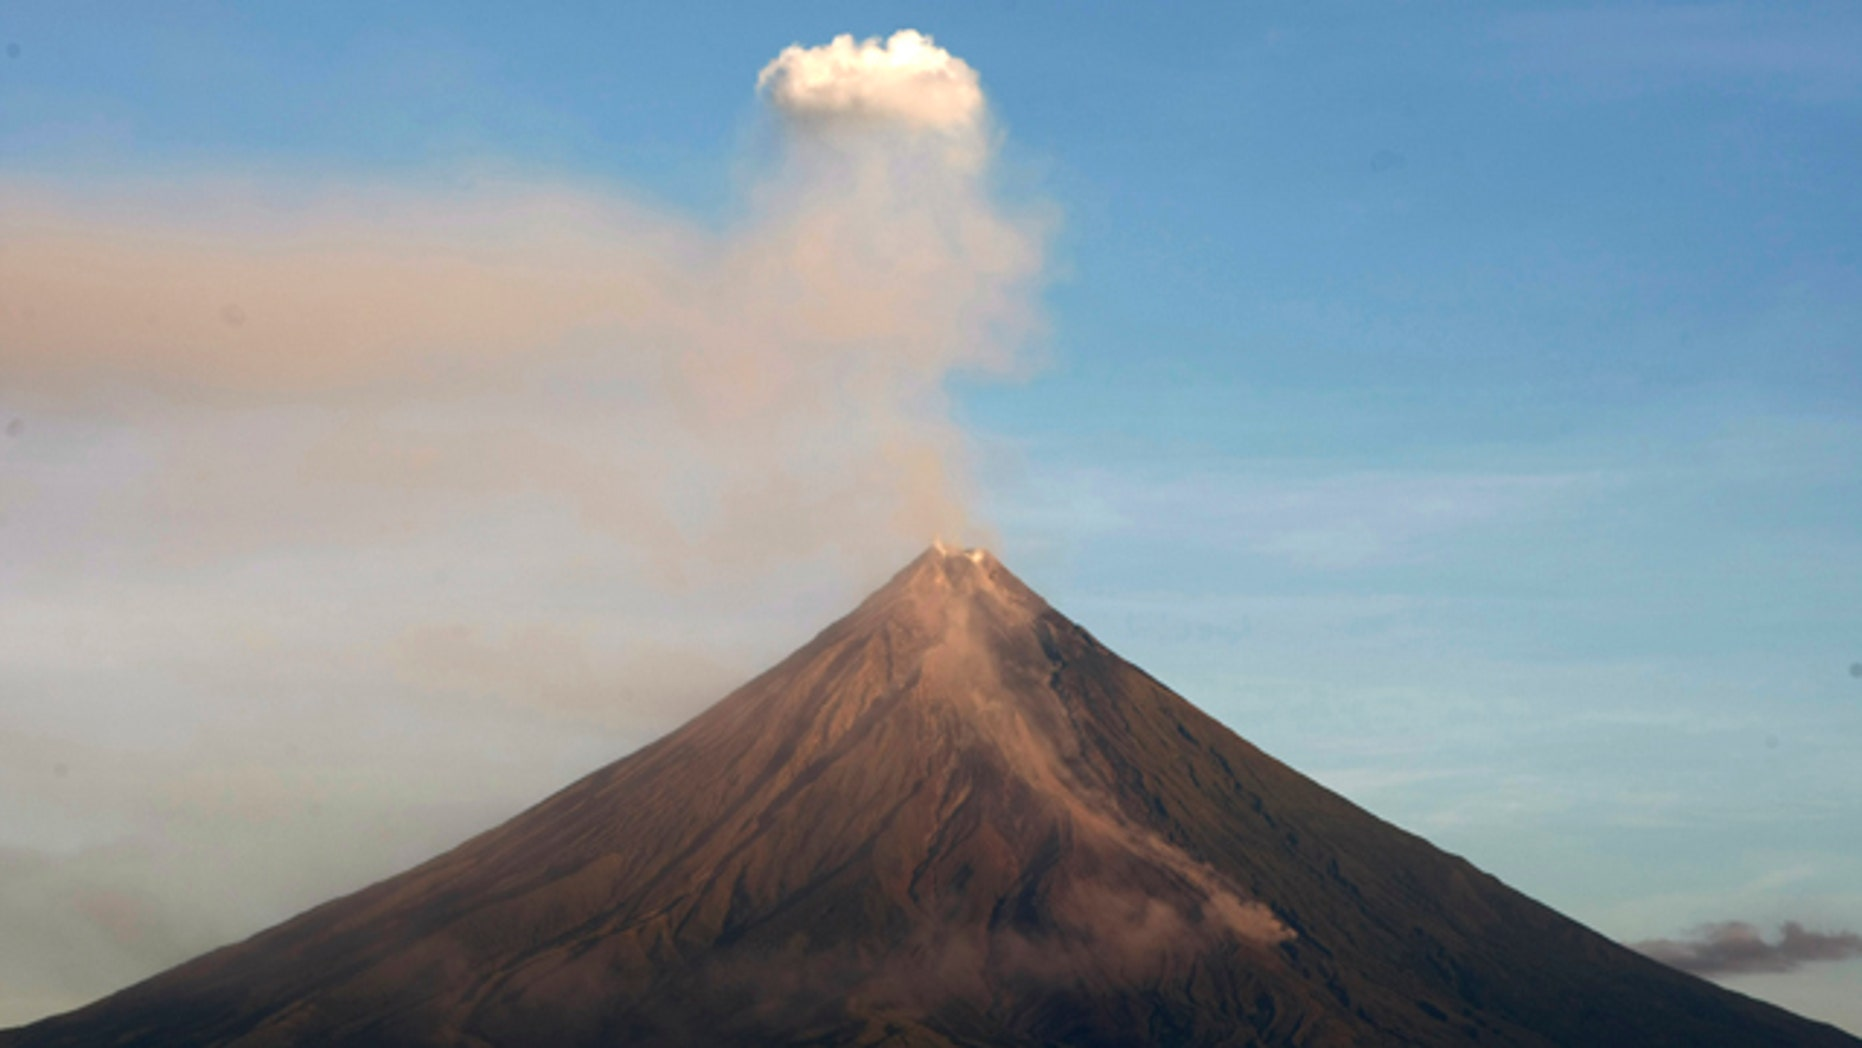 """Mayon volcano spews ash anew in another """"ash explosion"""" as viewed in Legazpi city, Albay province, about 500 kilometers south of Manila. Security forces will forcibly evacuate thousands of residents reluctant to leave their farms around the slopes of the country's most active volcano despite fears of a major eruption."""